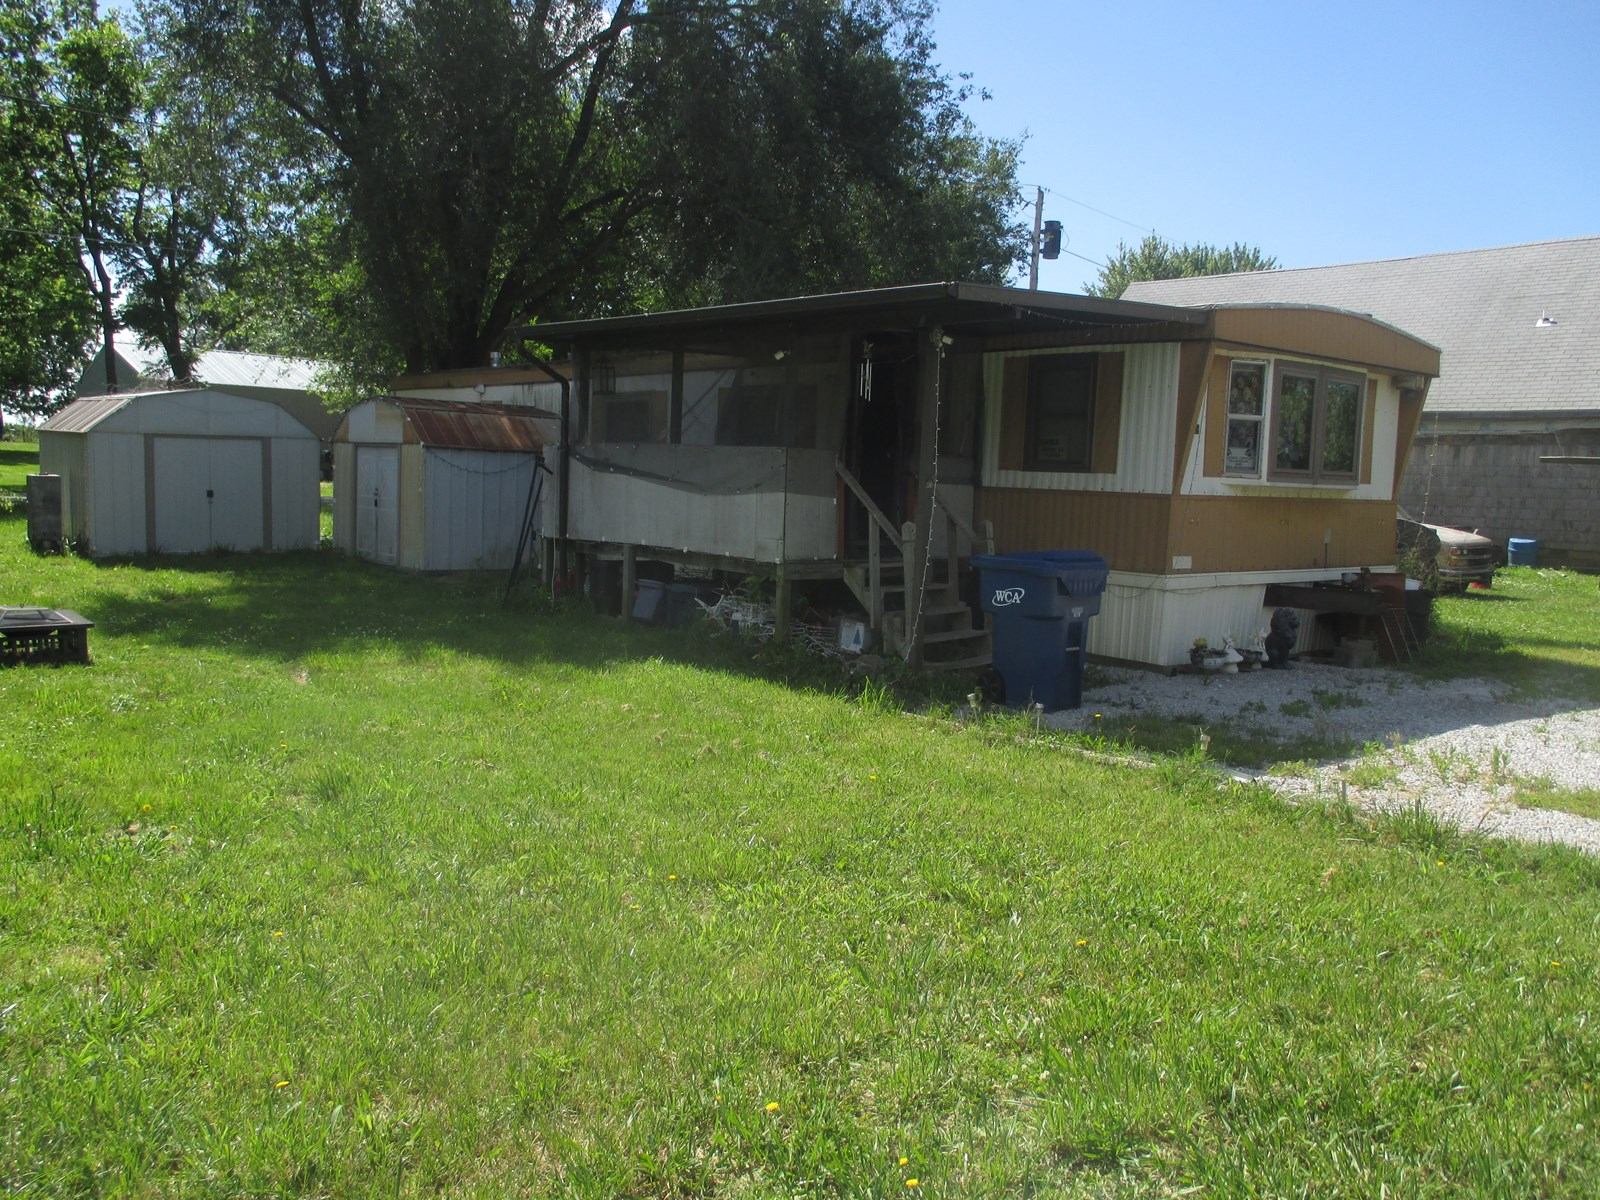 Mobile Home For Sale in Greenfield, Mo